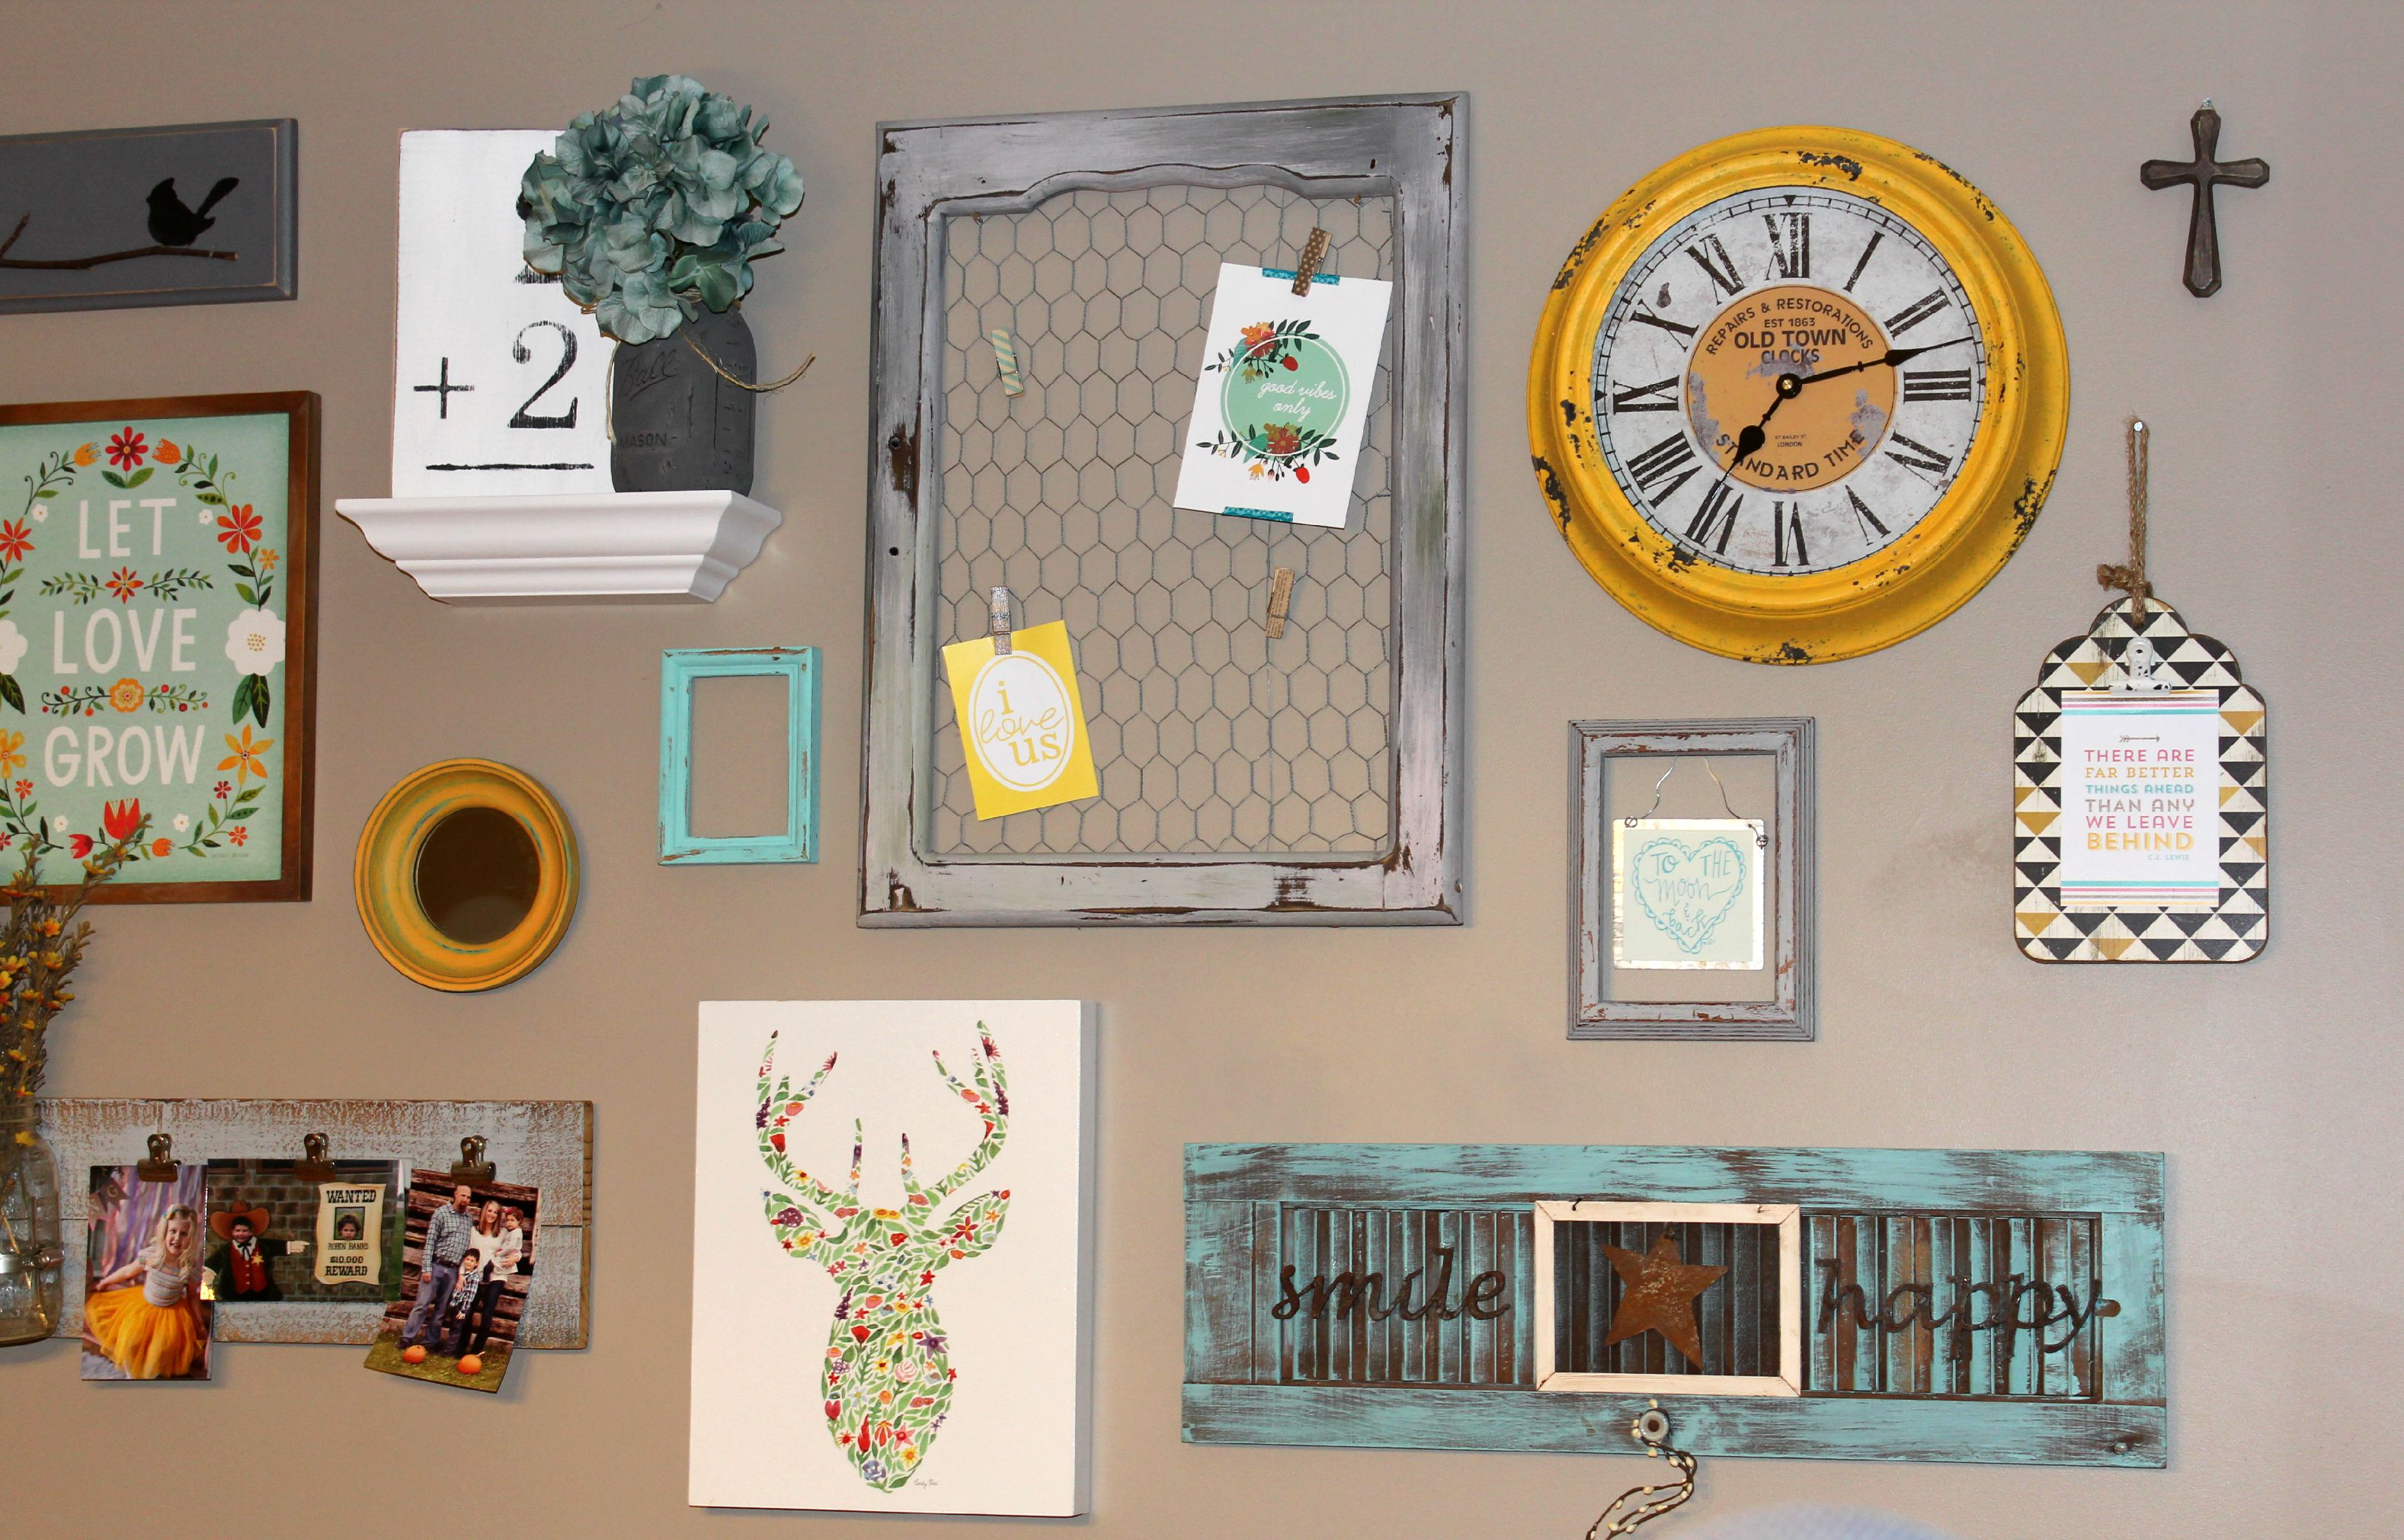 Rustic Wall Decor Gallery with a variety of interesting objects, art and picture frames.